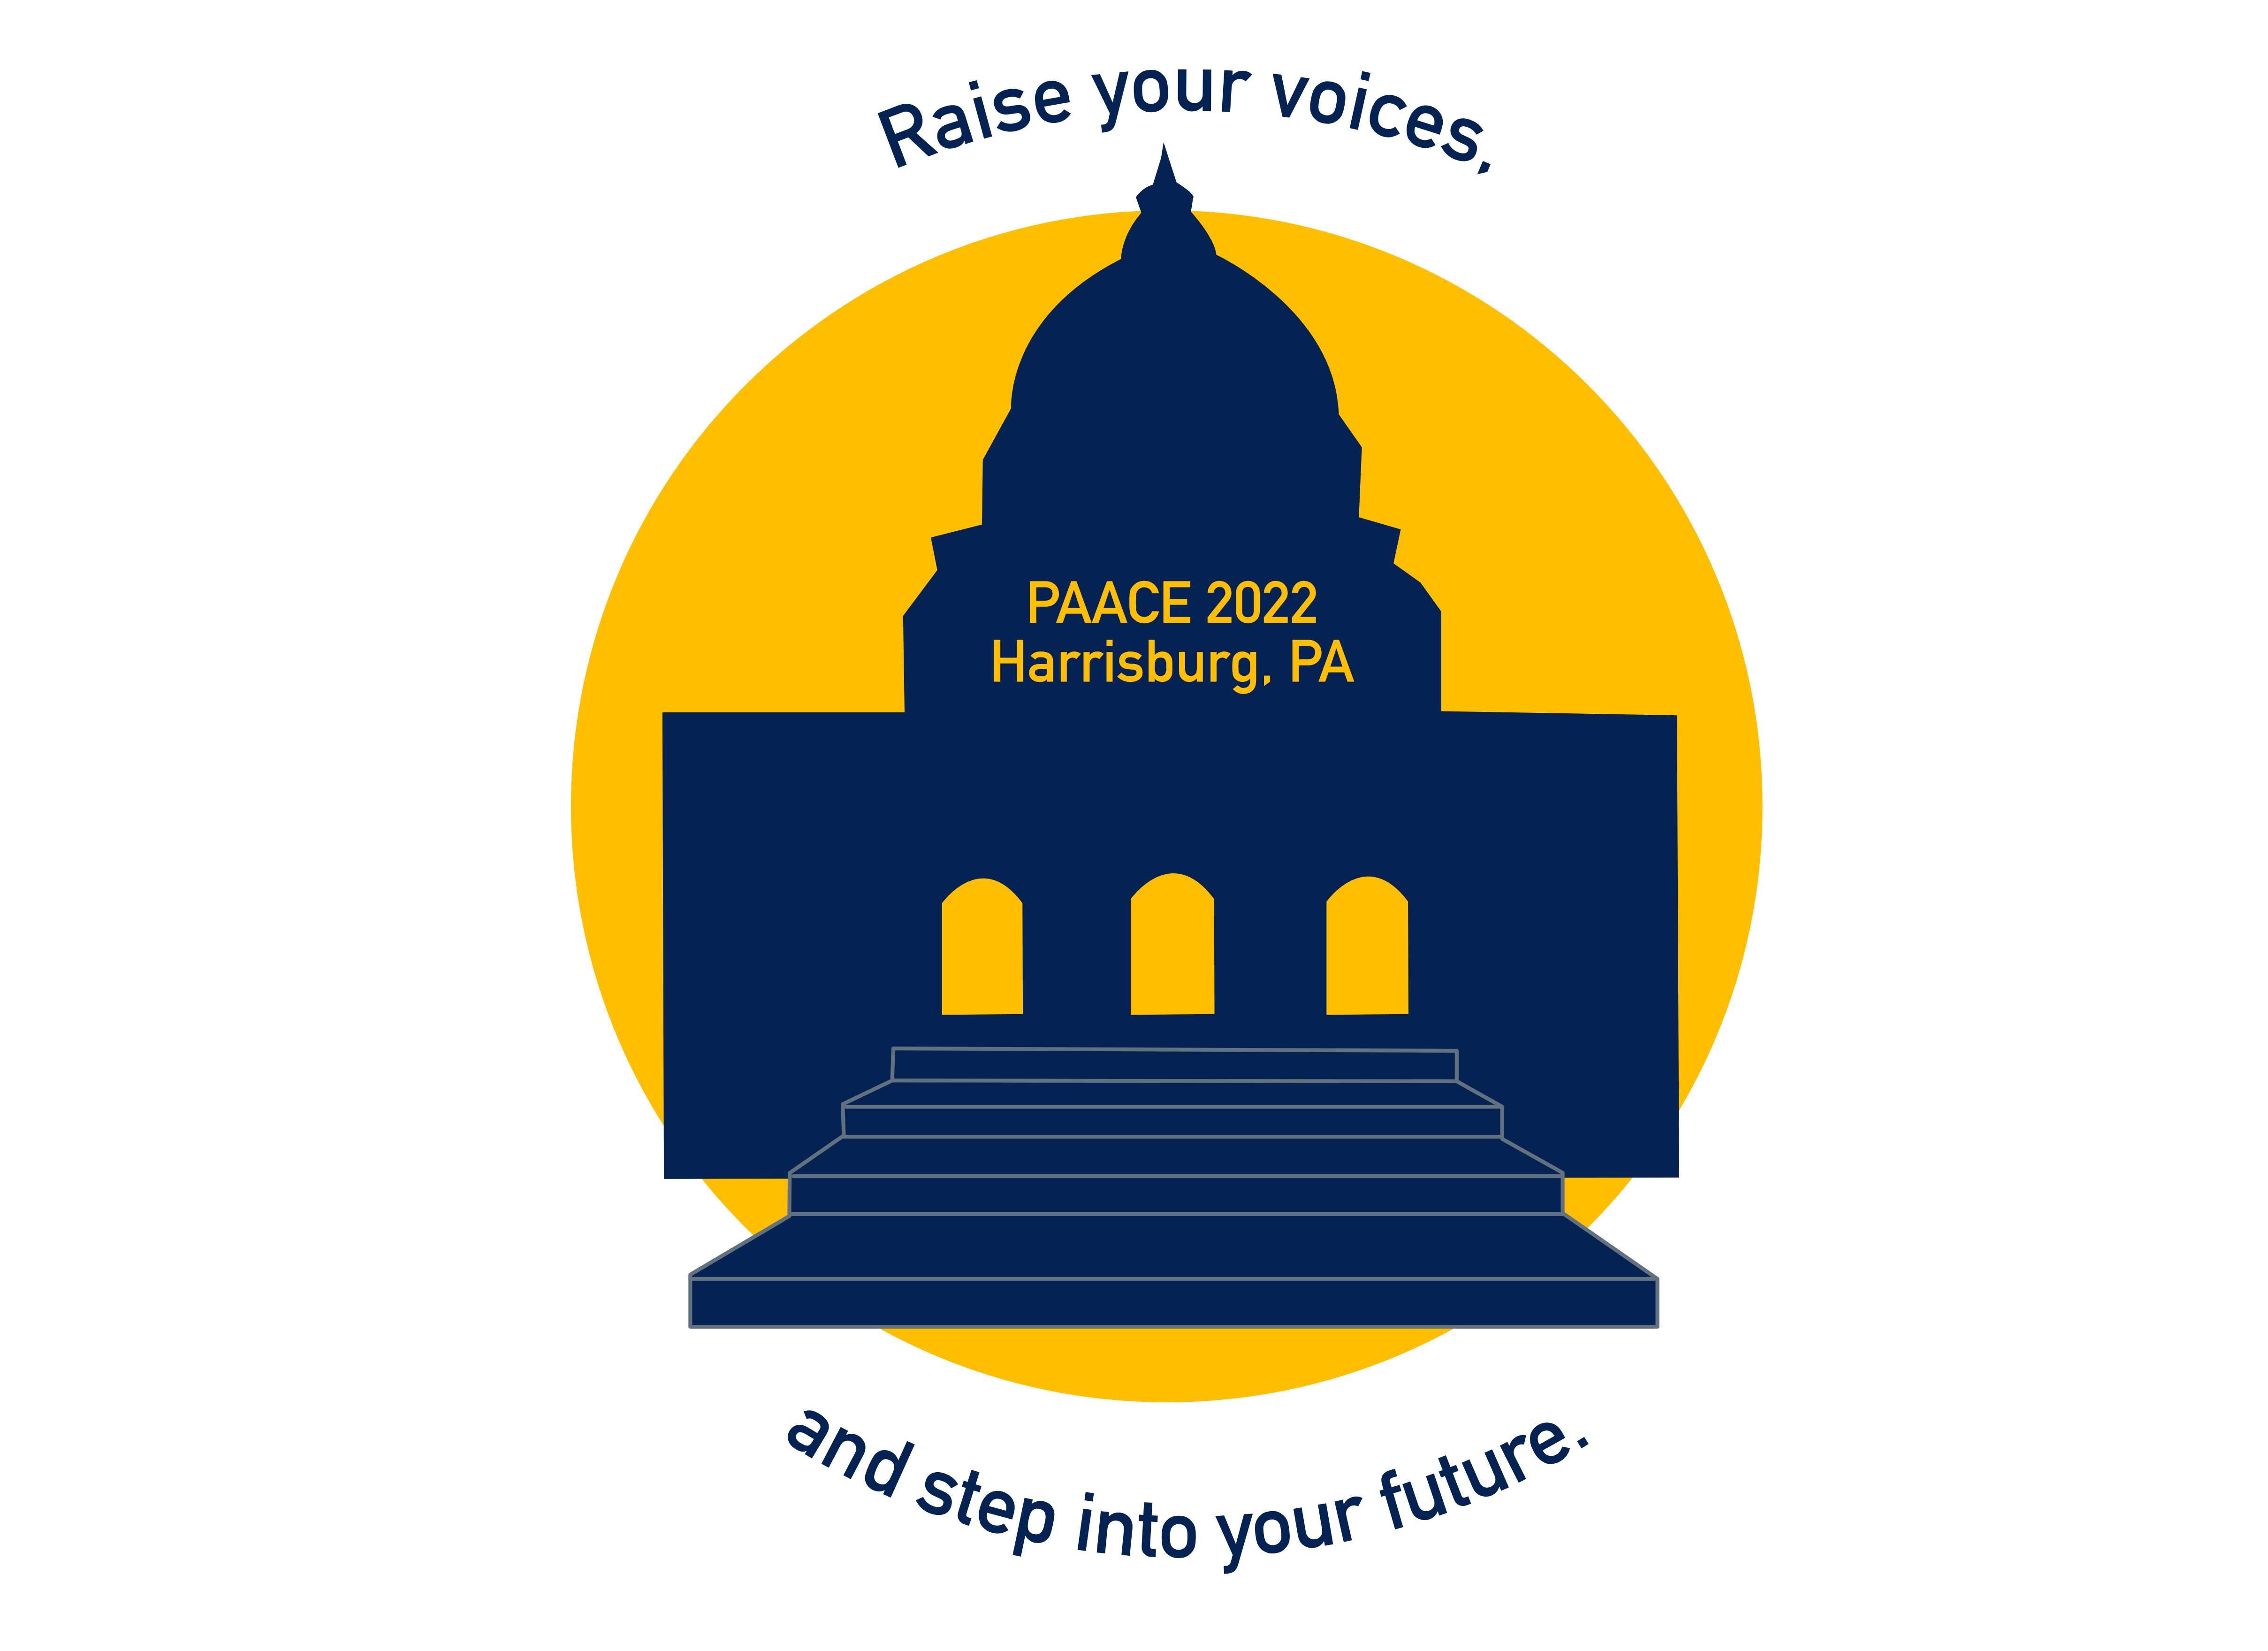 2022 paace conference logo